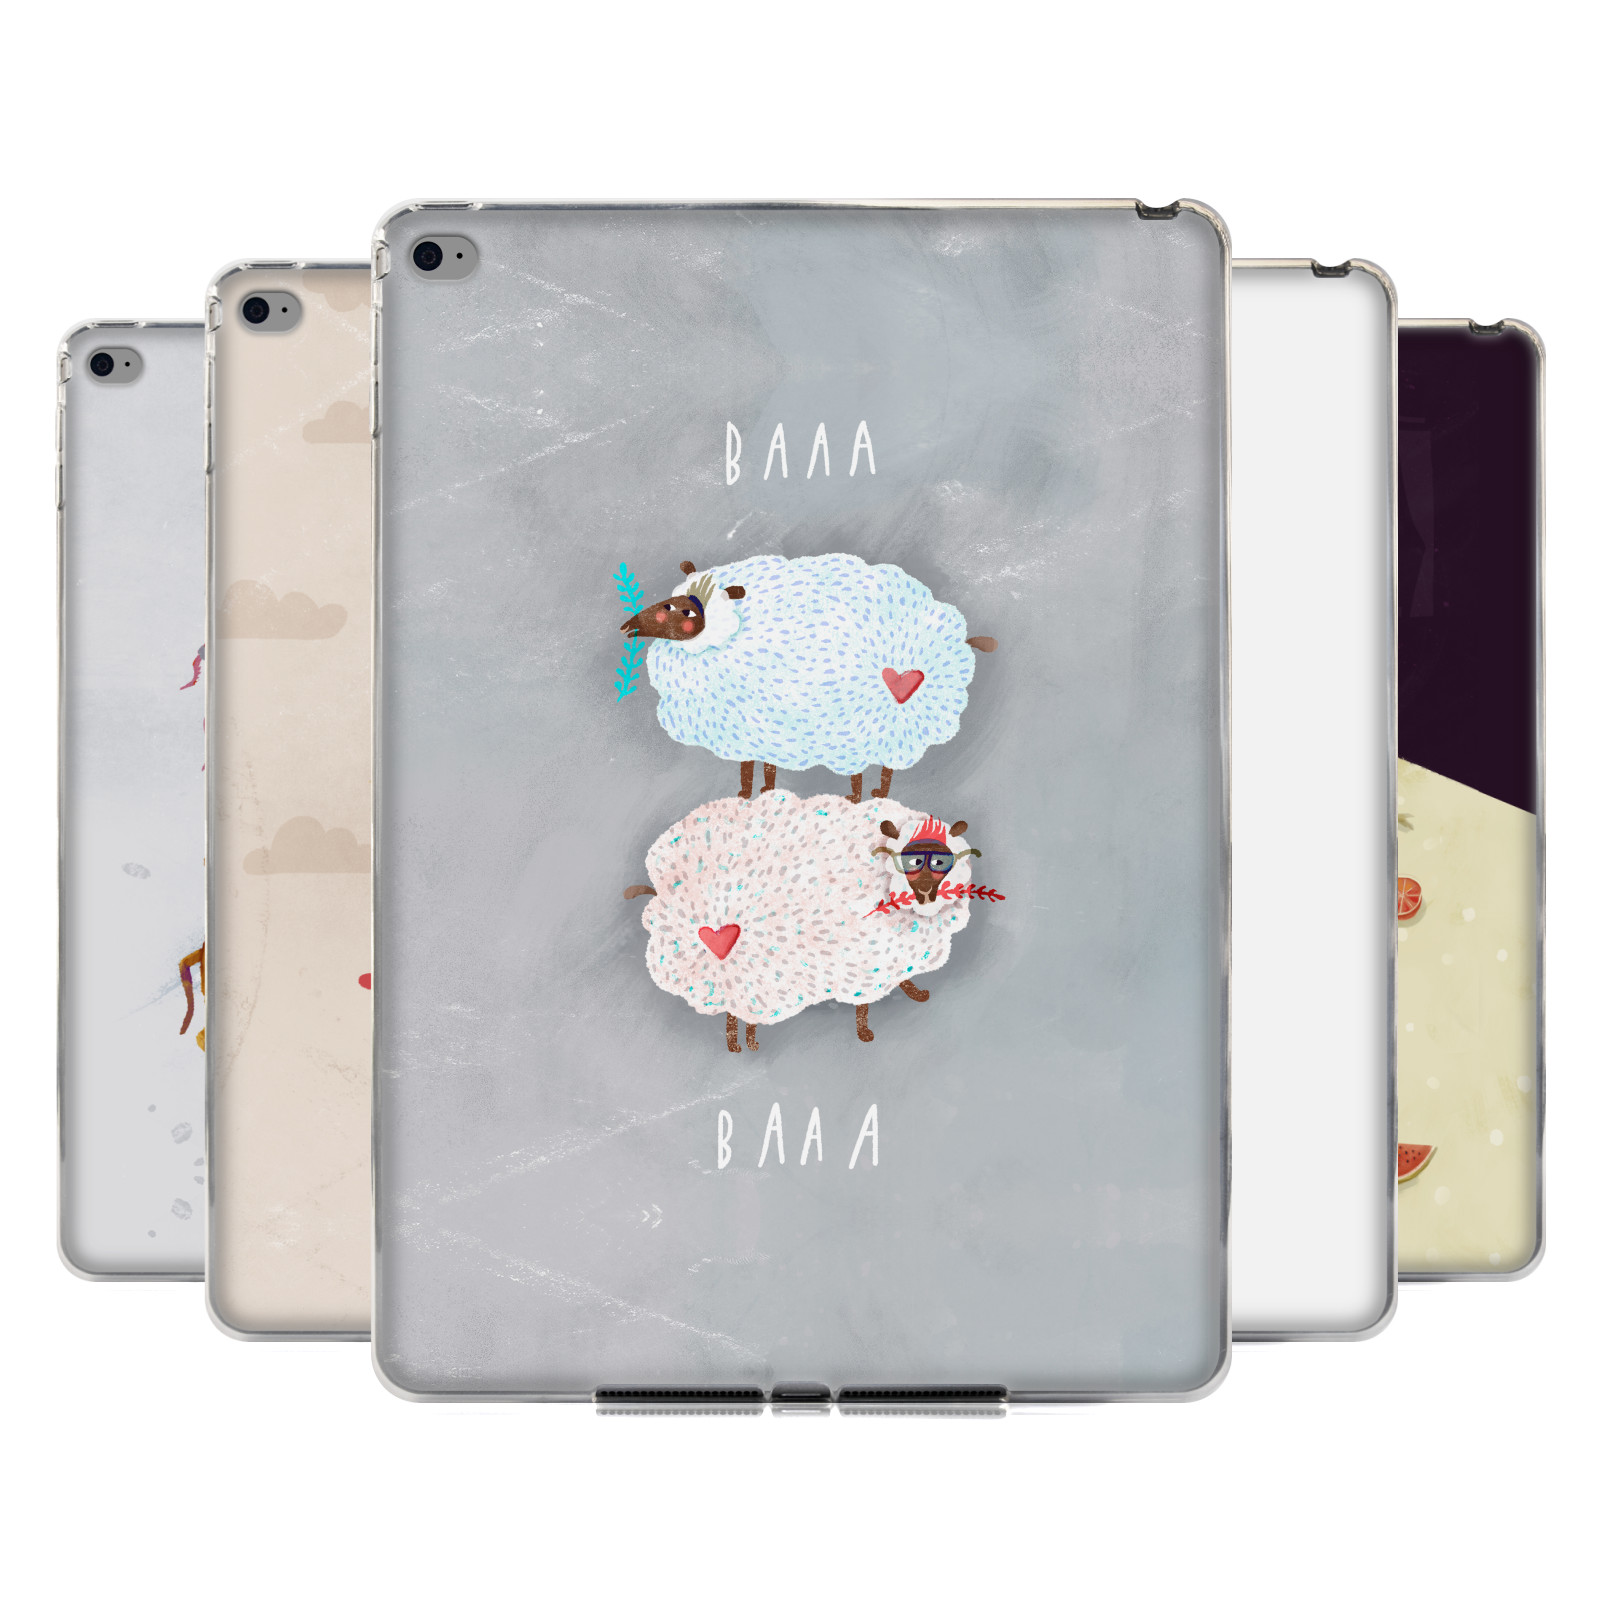 OFFICIAL OILIKKI ANIMALS SOFT GEL CASE FOR APPLE SAMSUNG TABLETS - <span itemprop='availableAtOrFrom'>Blackpool, Lancashire, United Kingdom</span> - You can return this item within 30 days of receipt if you are not satisfied with it.Prior to any return, please get in contact with us via e-mail, live chat or telephone. Th - Blackpool, Lancashire, United Kingdom